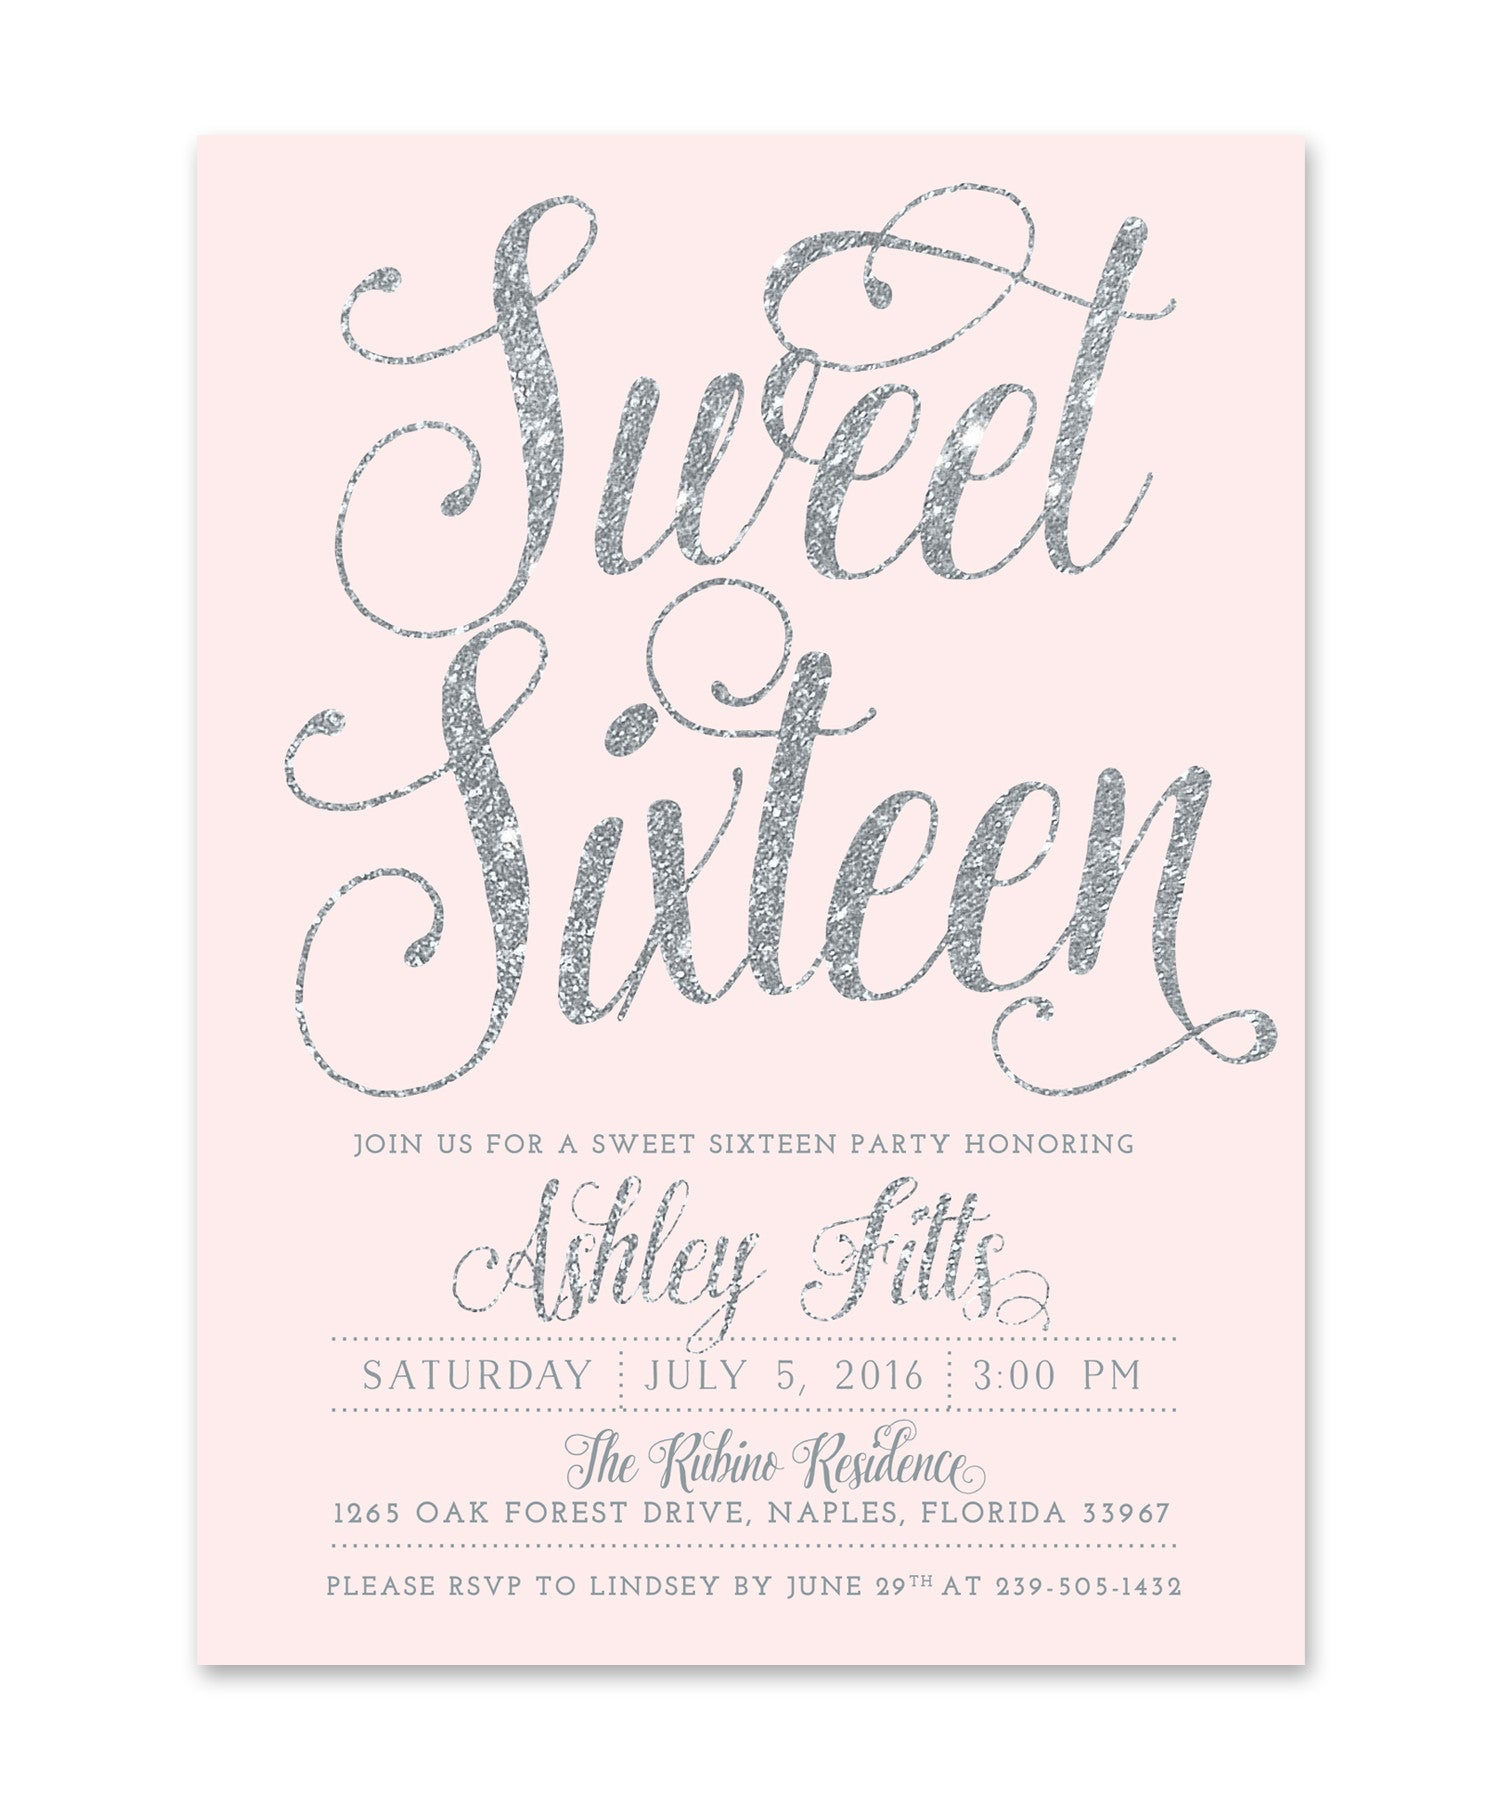 Ava Sweet Sixteen Party Invitation Blush Pink Silver Glitter